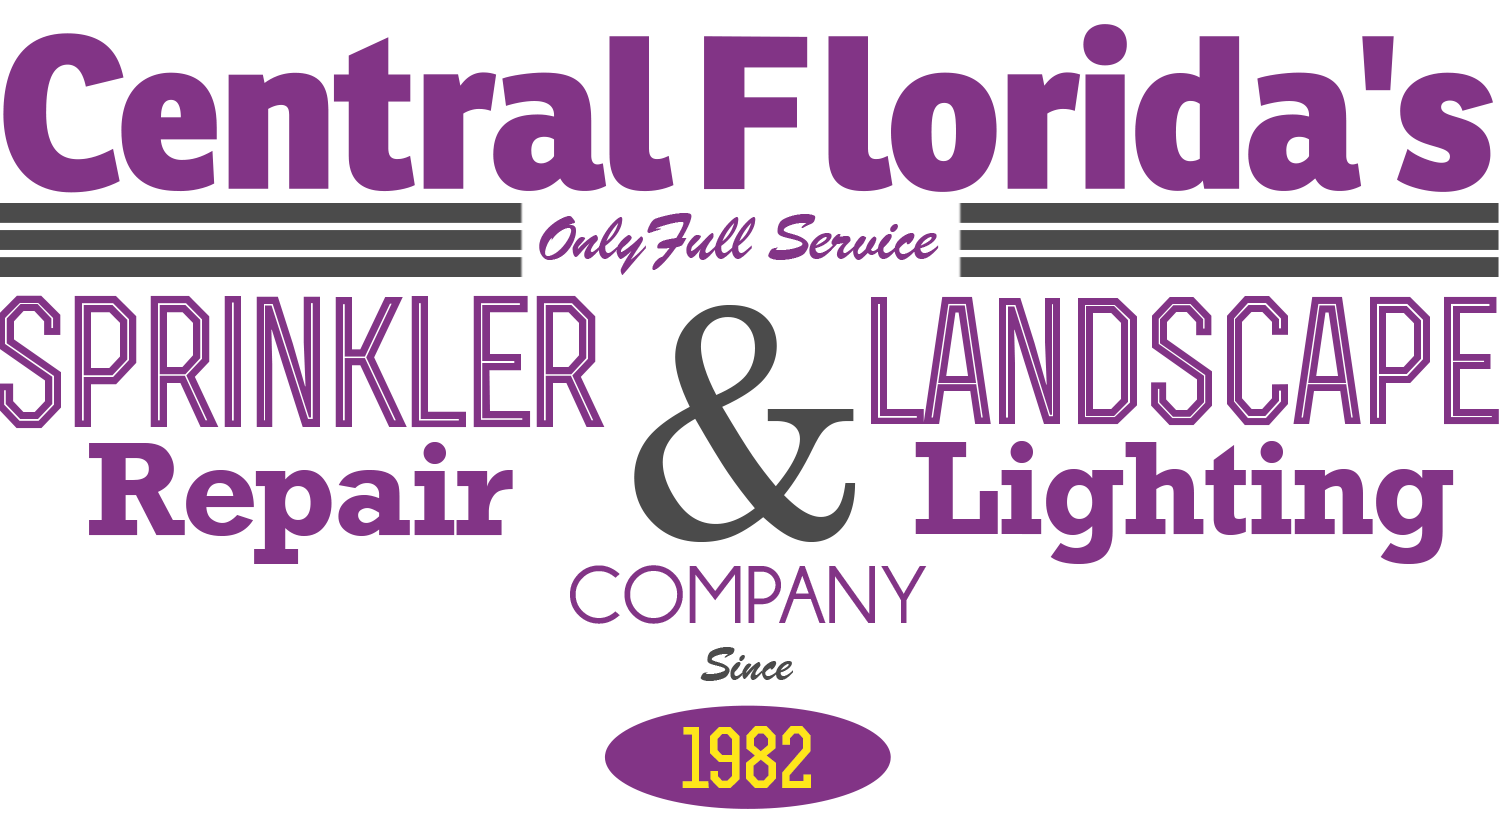 Central Florida's full service sprinkler repair & landscape lighting company since 1982.